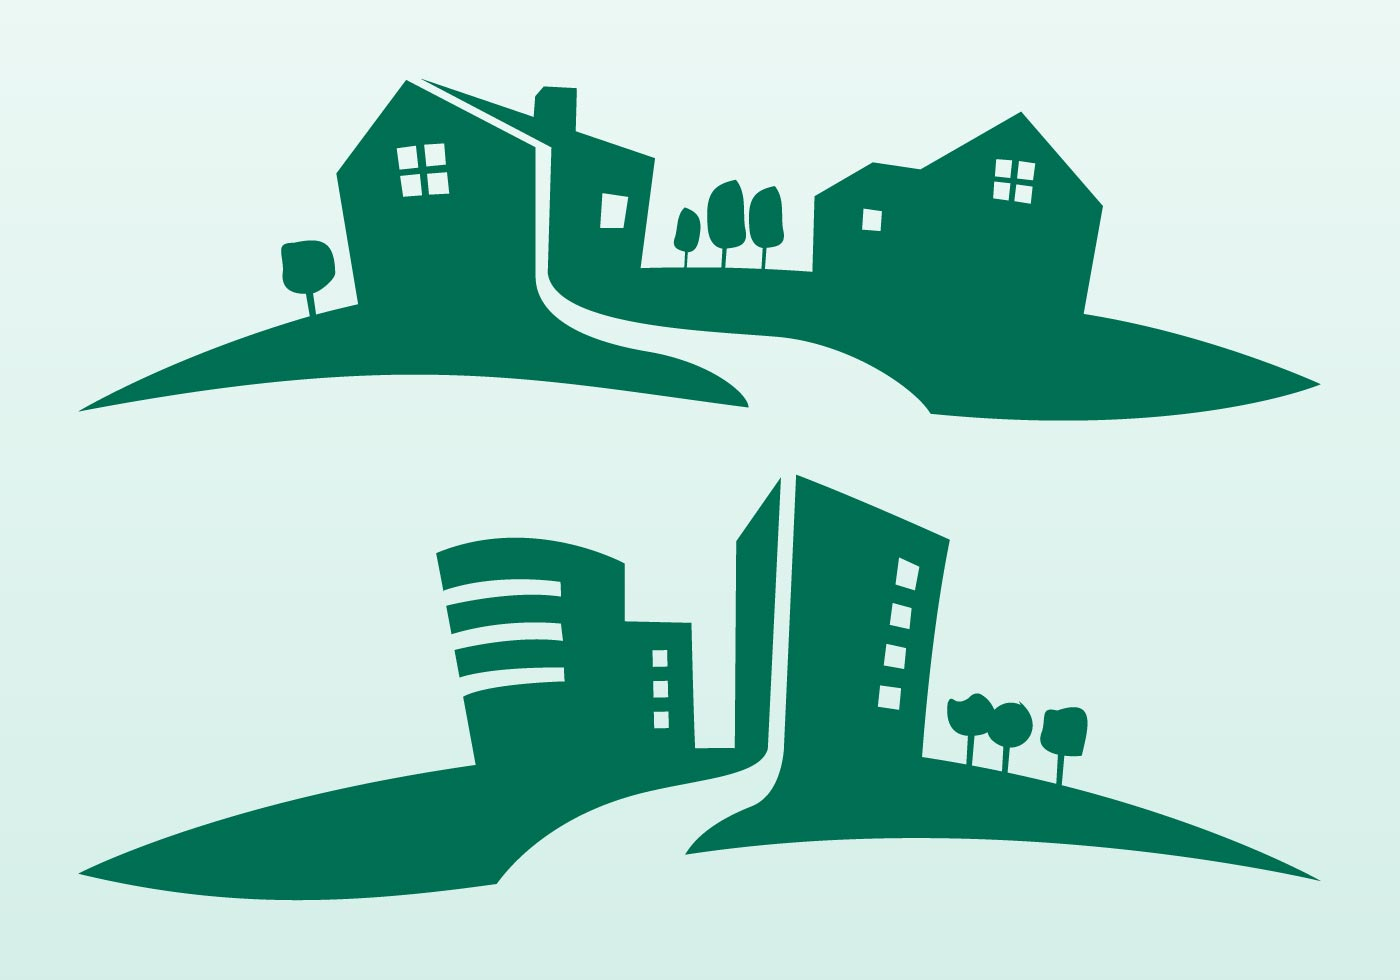 Buildings Silhouettes - Download Free Vector Art, Stock Graphics & Images